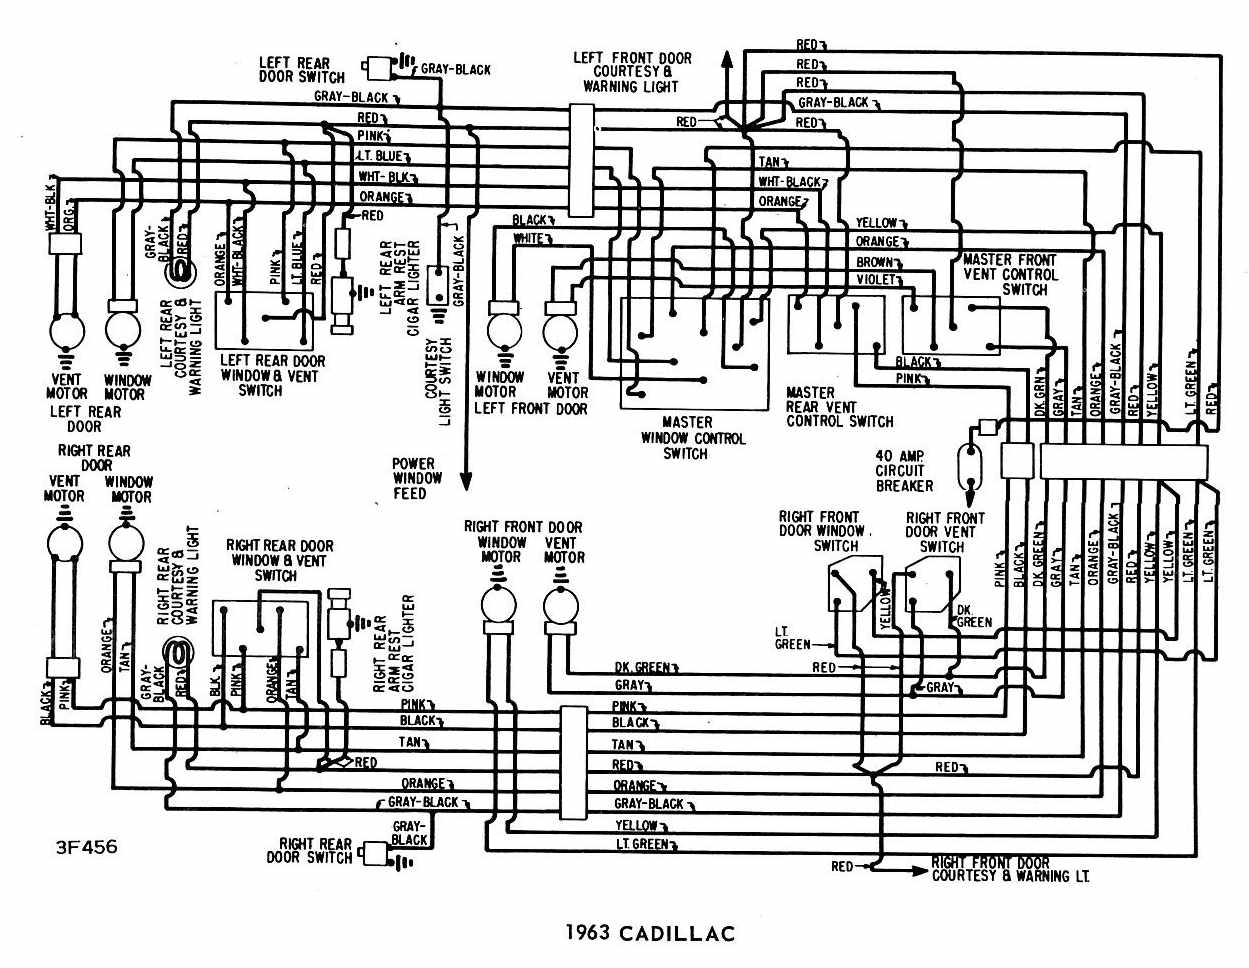 Daewoo Dsl 601 Wiring Diagram Library 1958 Ford Ranchero Headlight Switch Attractive Matiz Coil Sketch Electrical And